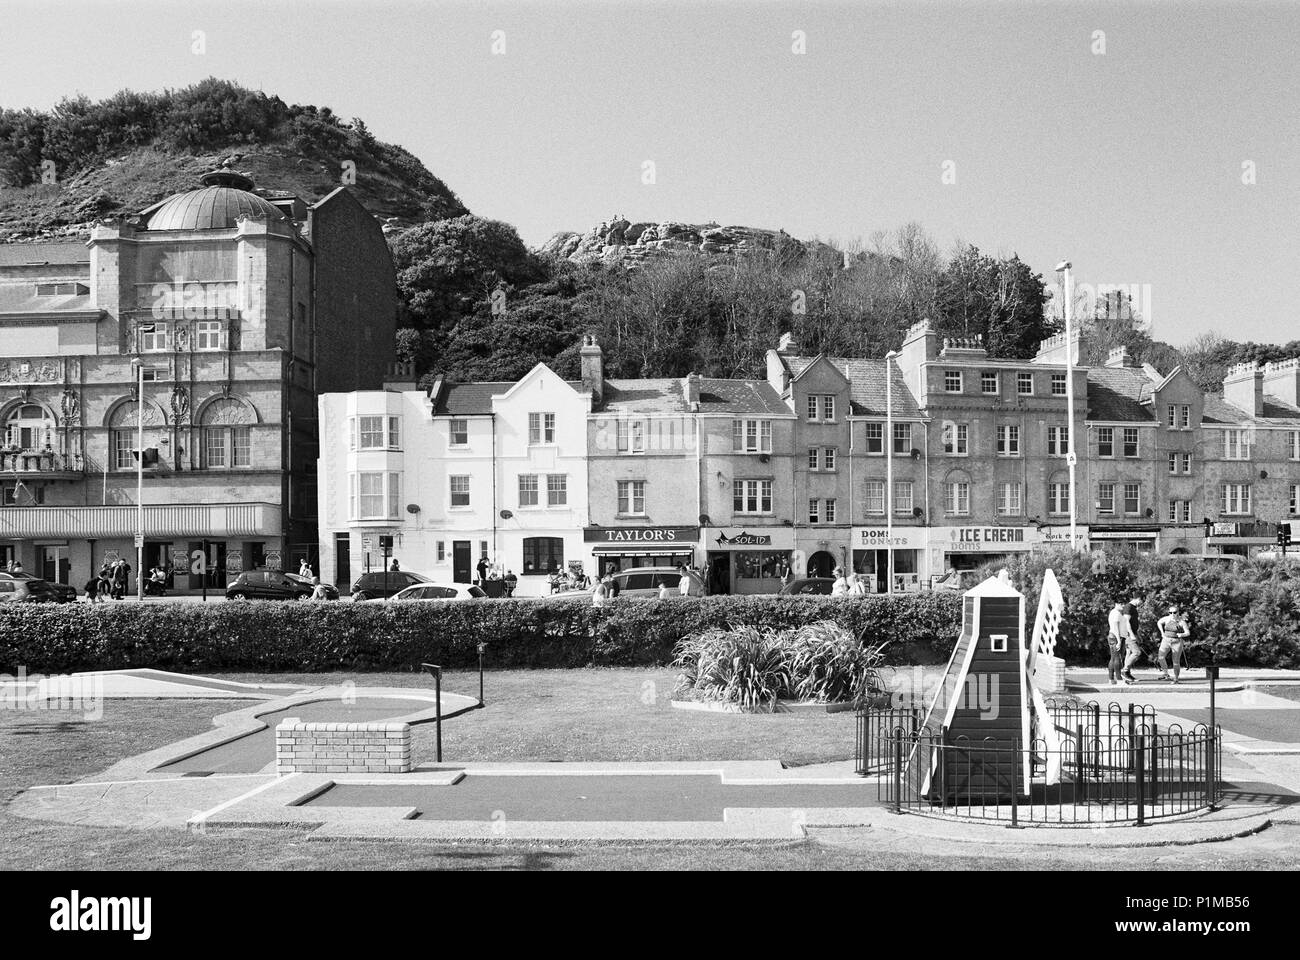 Buildings on Hastings seafront, East Sussex, UK with crazy golf course in foreground - Stock Image